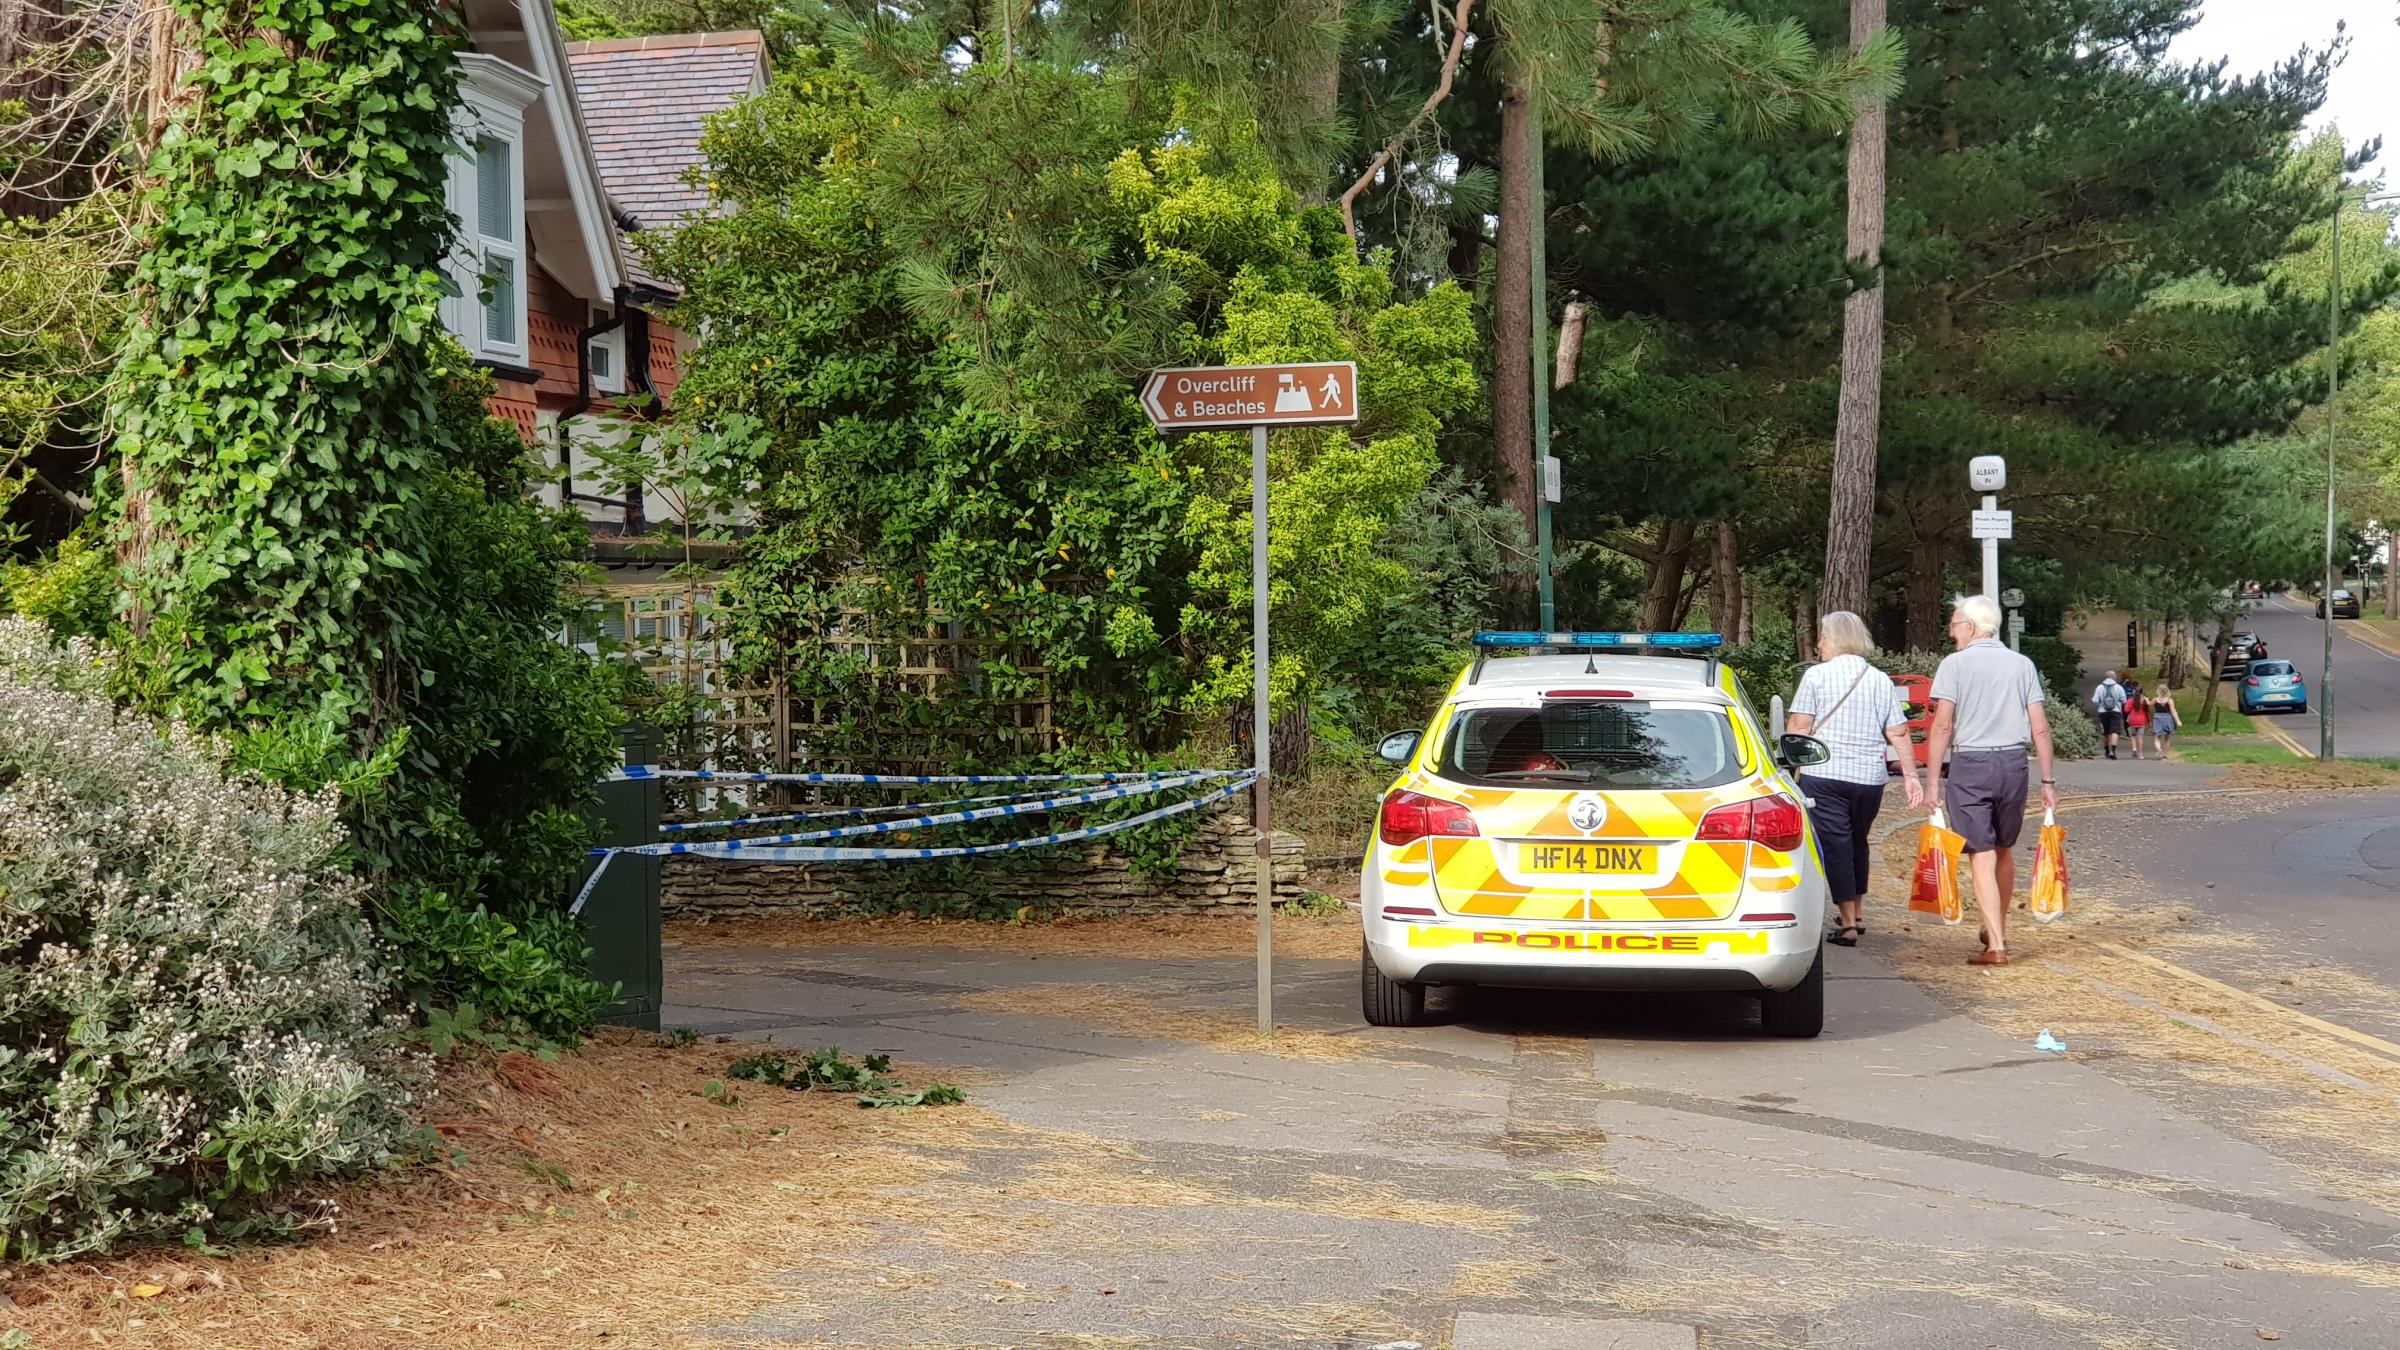 East Overcliff Drive cordoned off by police after incident